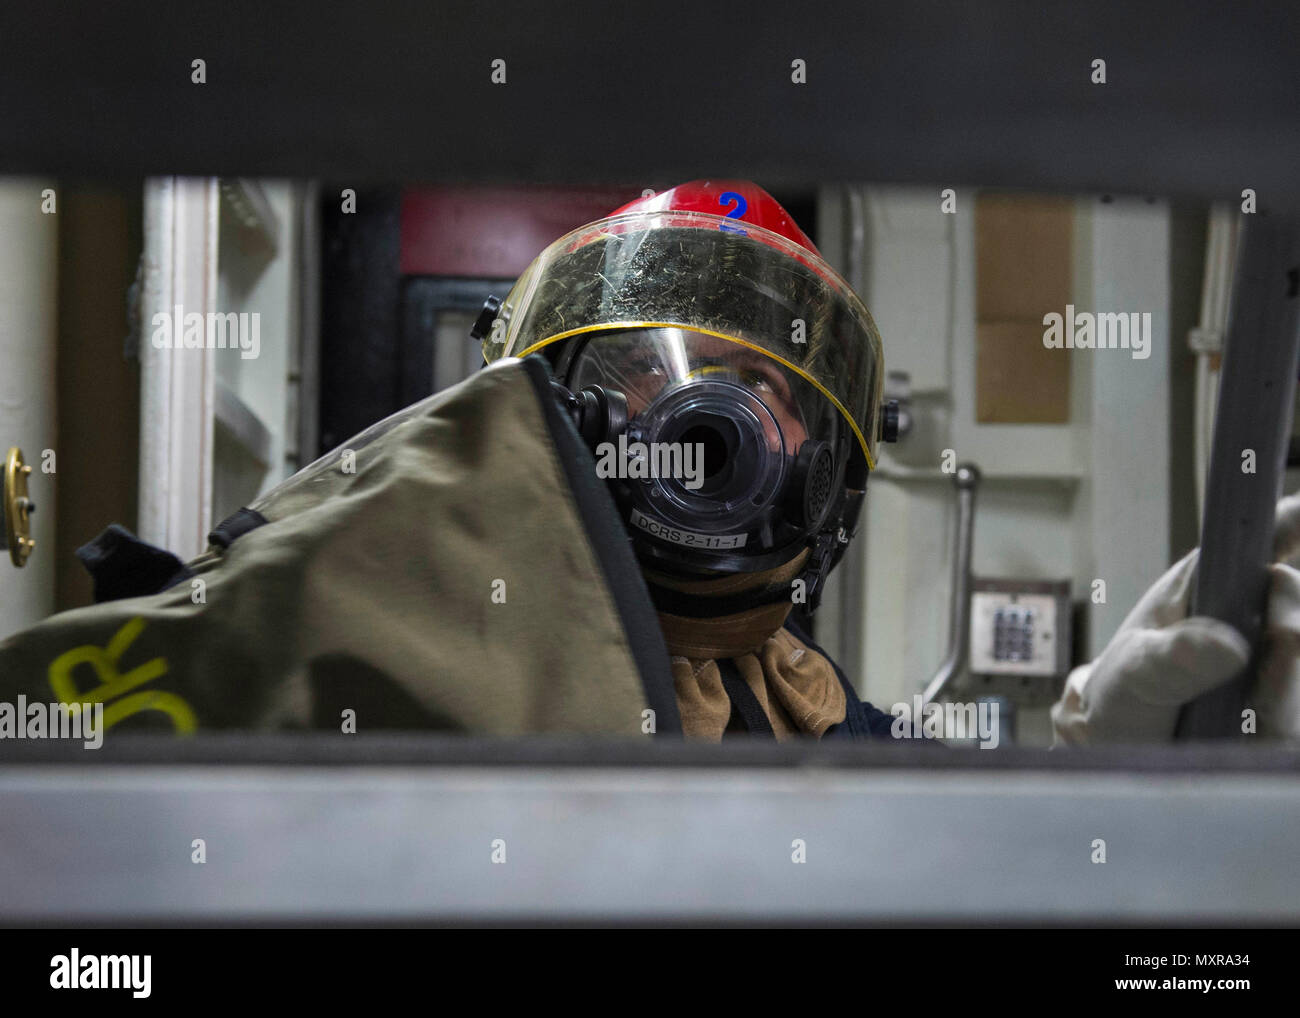 161128-N-XK398-088 PHILIPPINE SEA (November 28, 2016) Petty Officer 2nd Class Cole Ashdown inspects a compartment for potential hazards during a damage control drill aboard the Arleigh Burke-class guided-missile destroyer USS Mustin (DDG 89). Mustin is on patrol in the U.S. 7th Fleet area of responsibility in support of security and stability in the Indo-Asia-Pacific region. (U.S. Navy photo by Seaman Joshua Mortensen/Released) Stock Photo